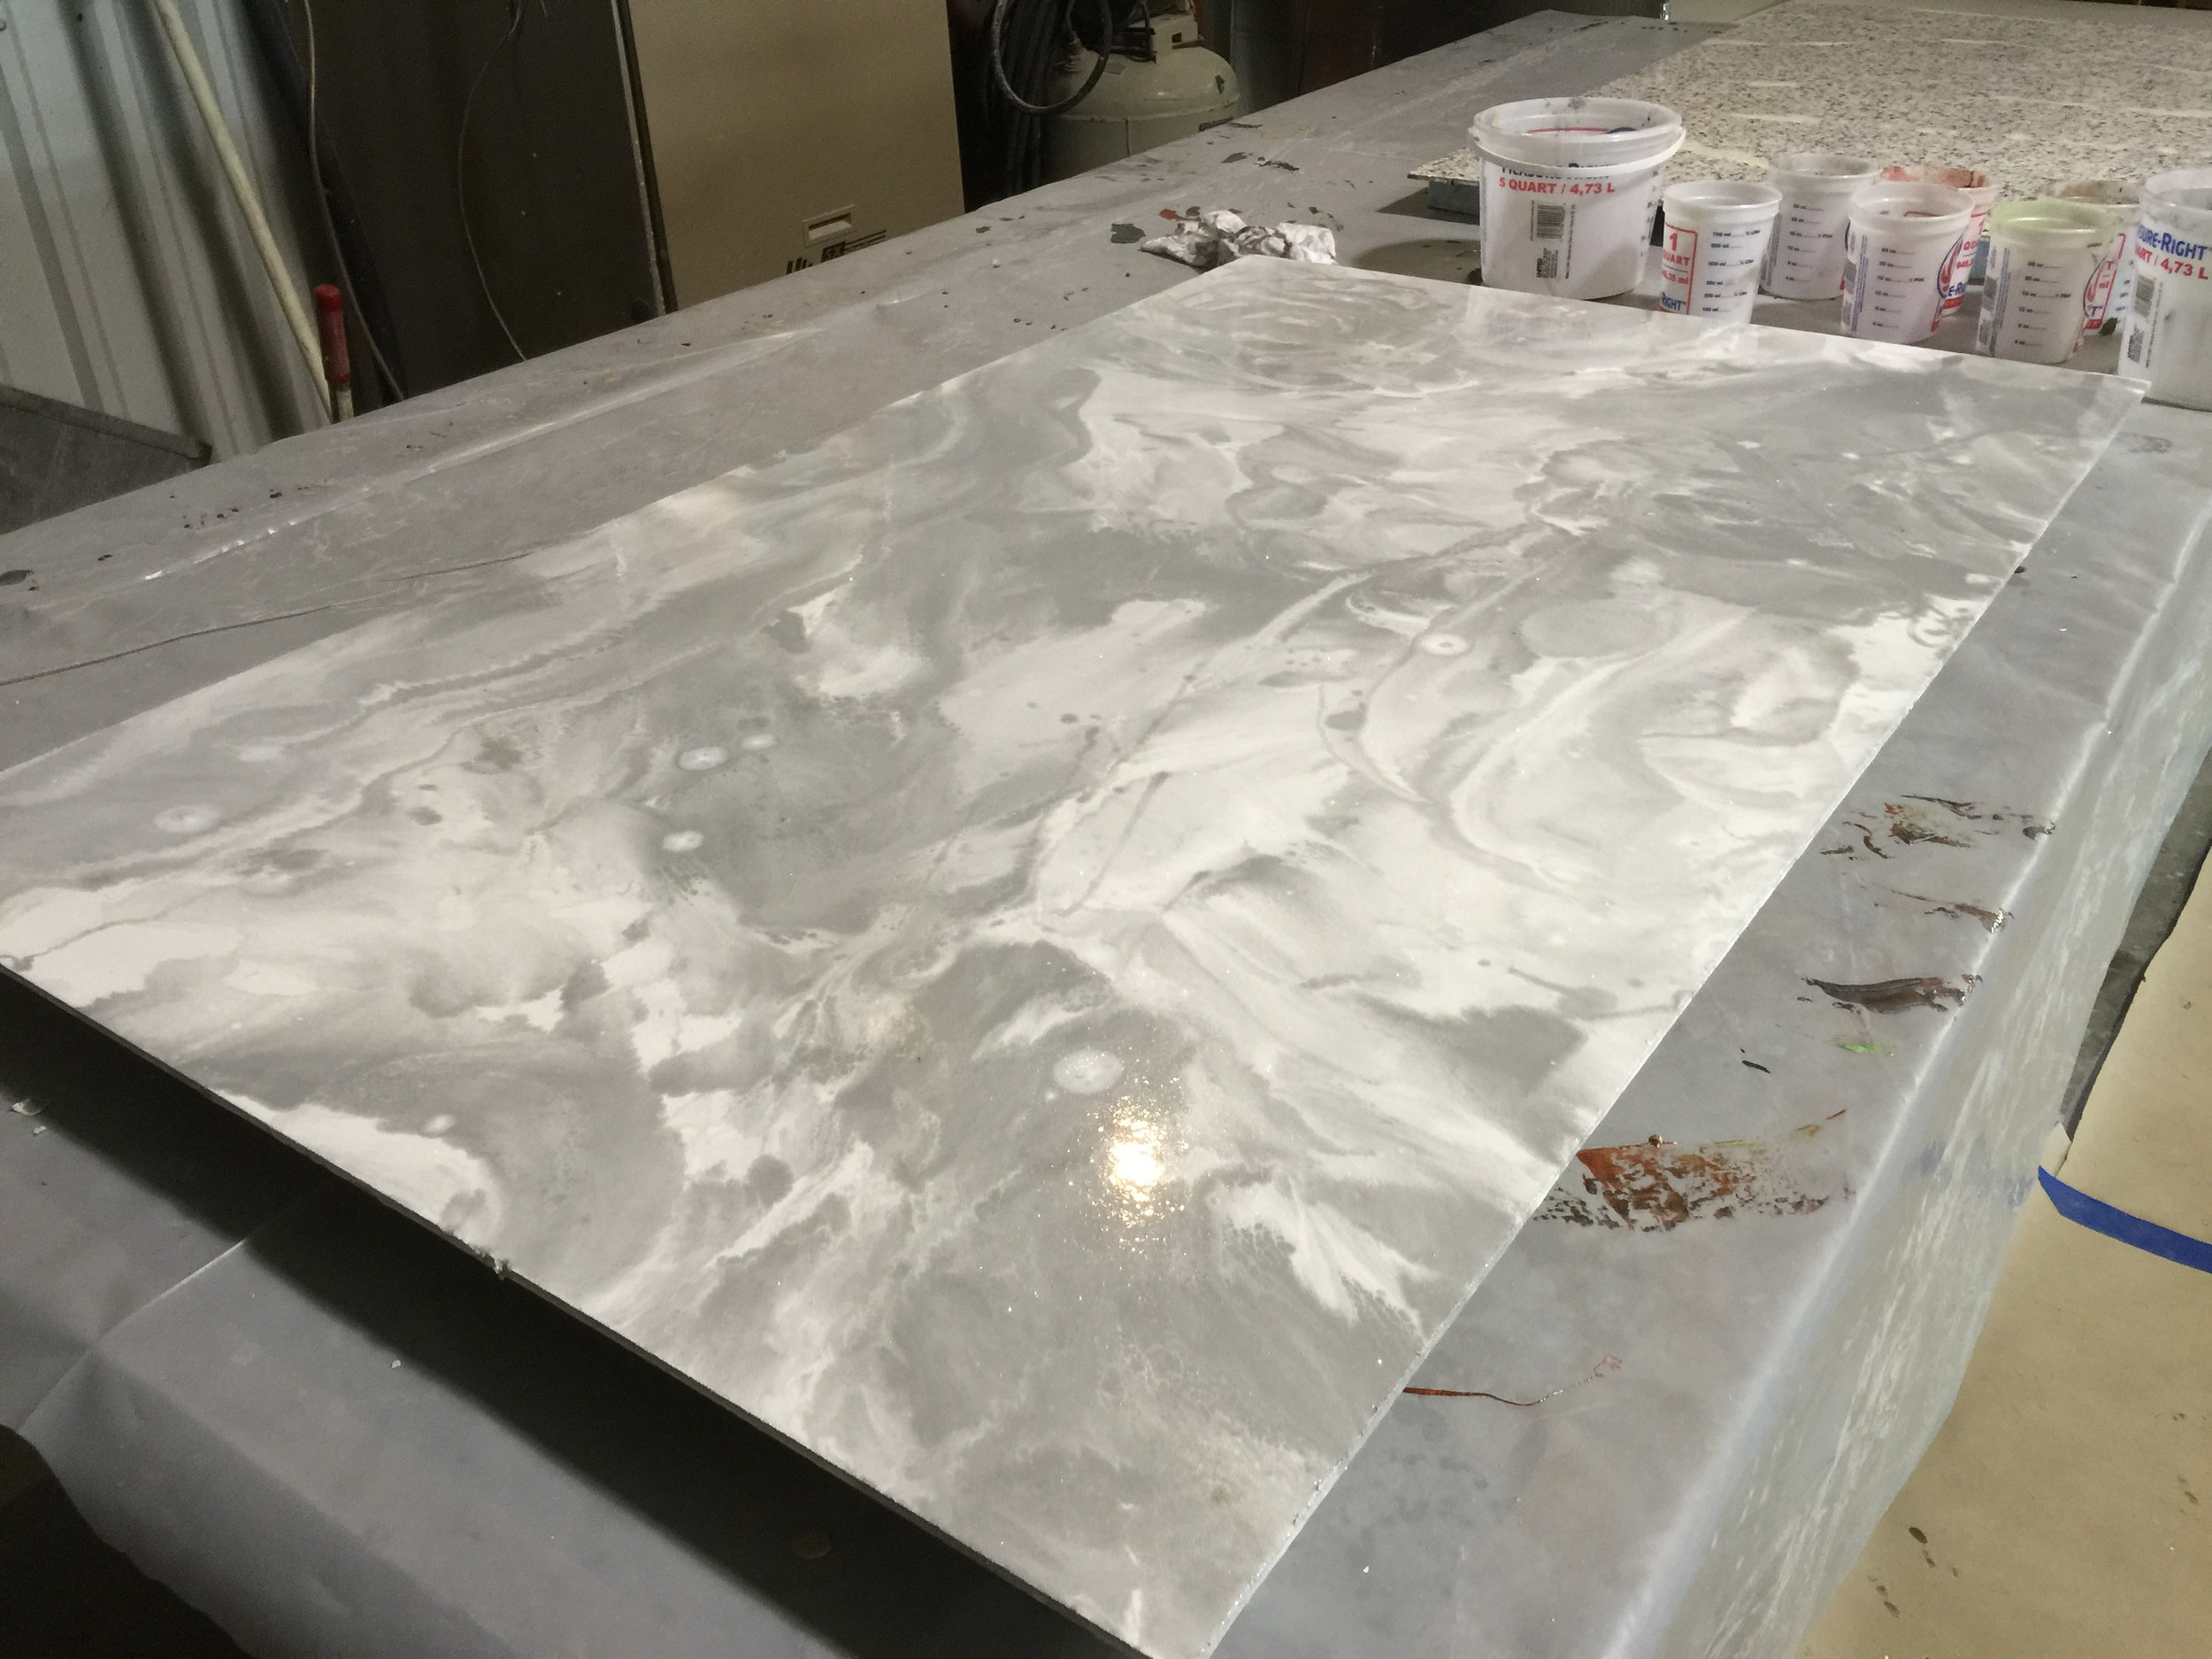 Epoxy overlays are made up of COMPONENTS that lock tightly onto the existing concrete or sub-floor. Epoxies are highly durable and popular in garage and warehouse applications although they are gaining APPRECIATION as a basement or main floor covering by contractors nationwide.